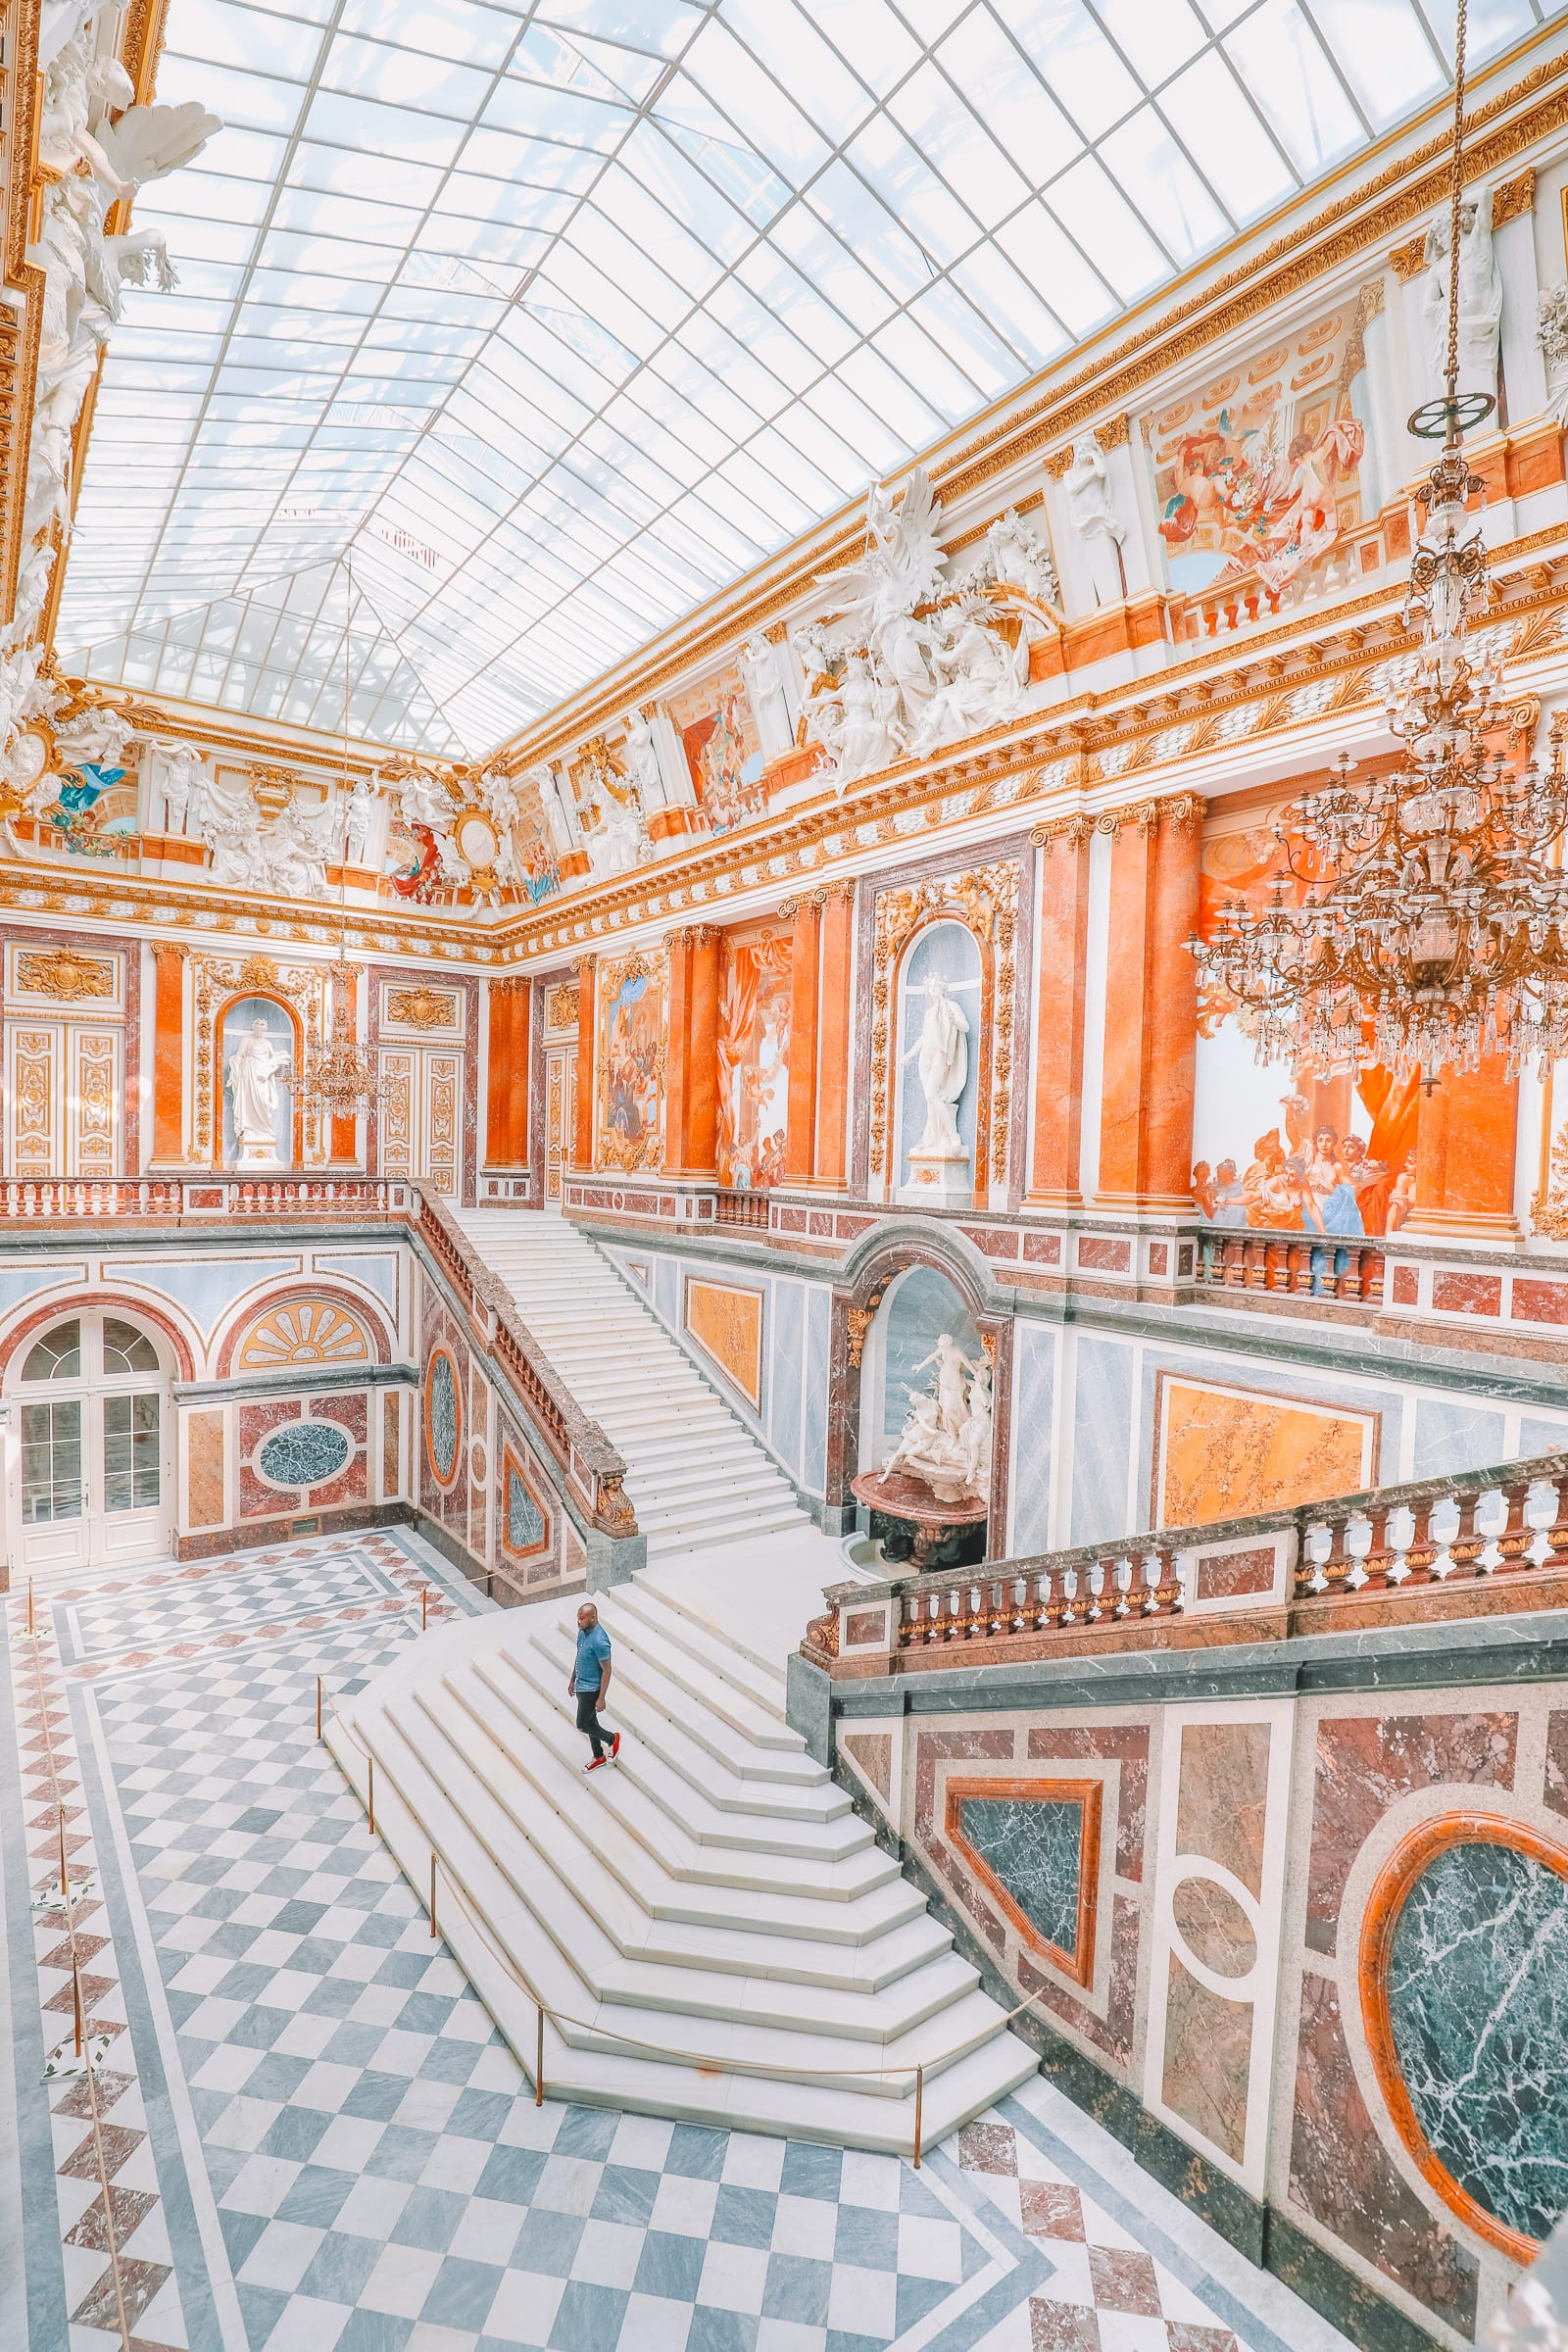 Herrenchiemsee Palace - One Of The Most Beautiful And Grandest Palaces In Germany You Have To Visit! (20)